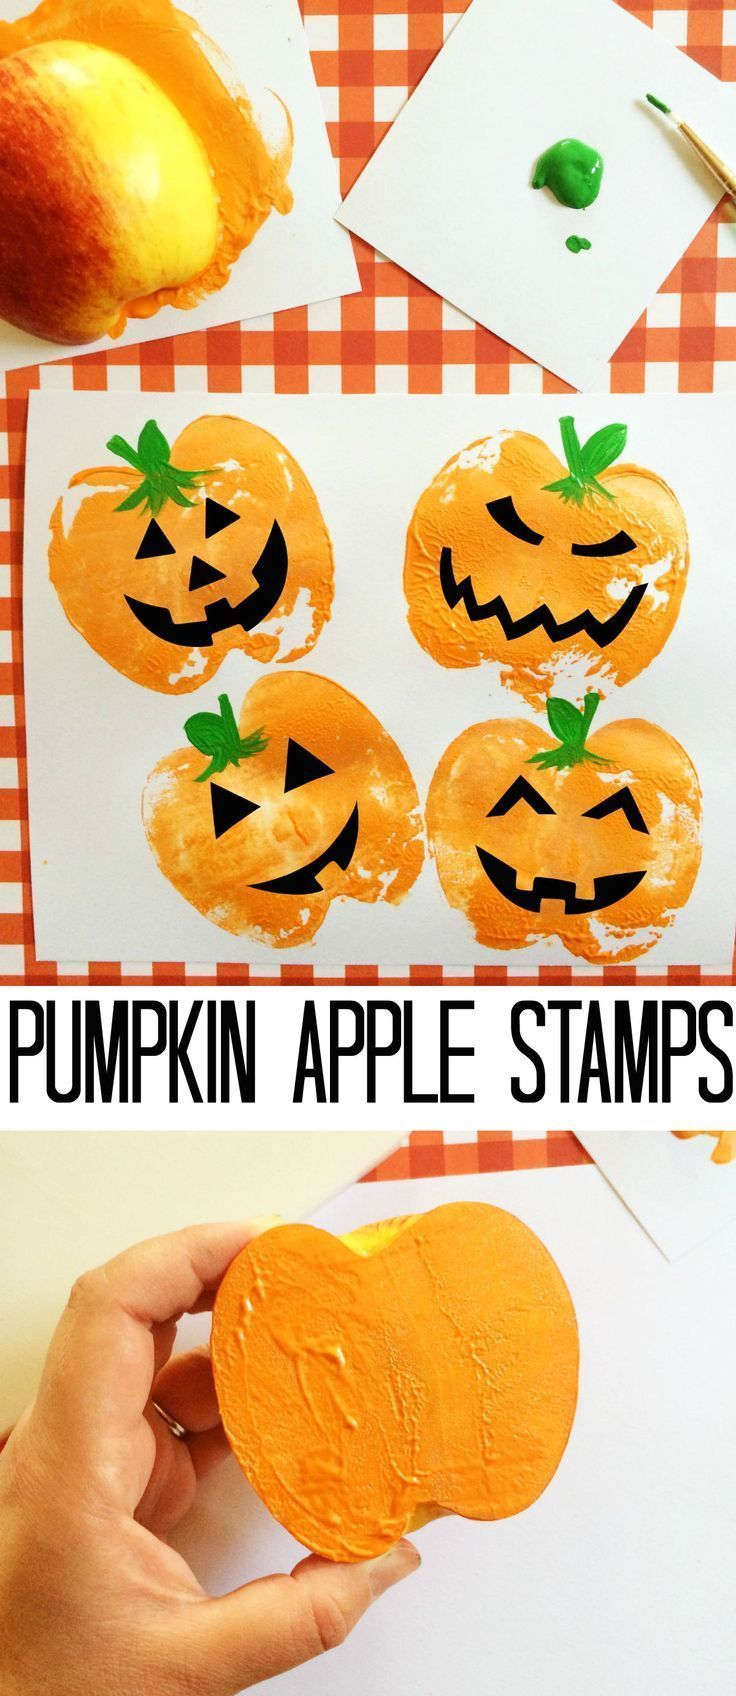 pumpkin apple stamps pumpkin crafts kidskids - Halloween Arts And Crafts For Kids Pinterest